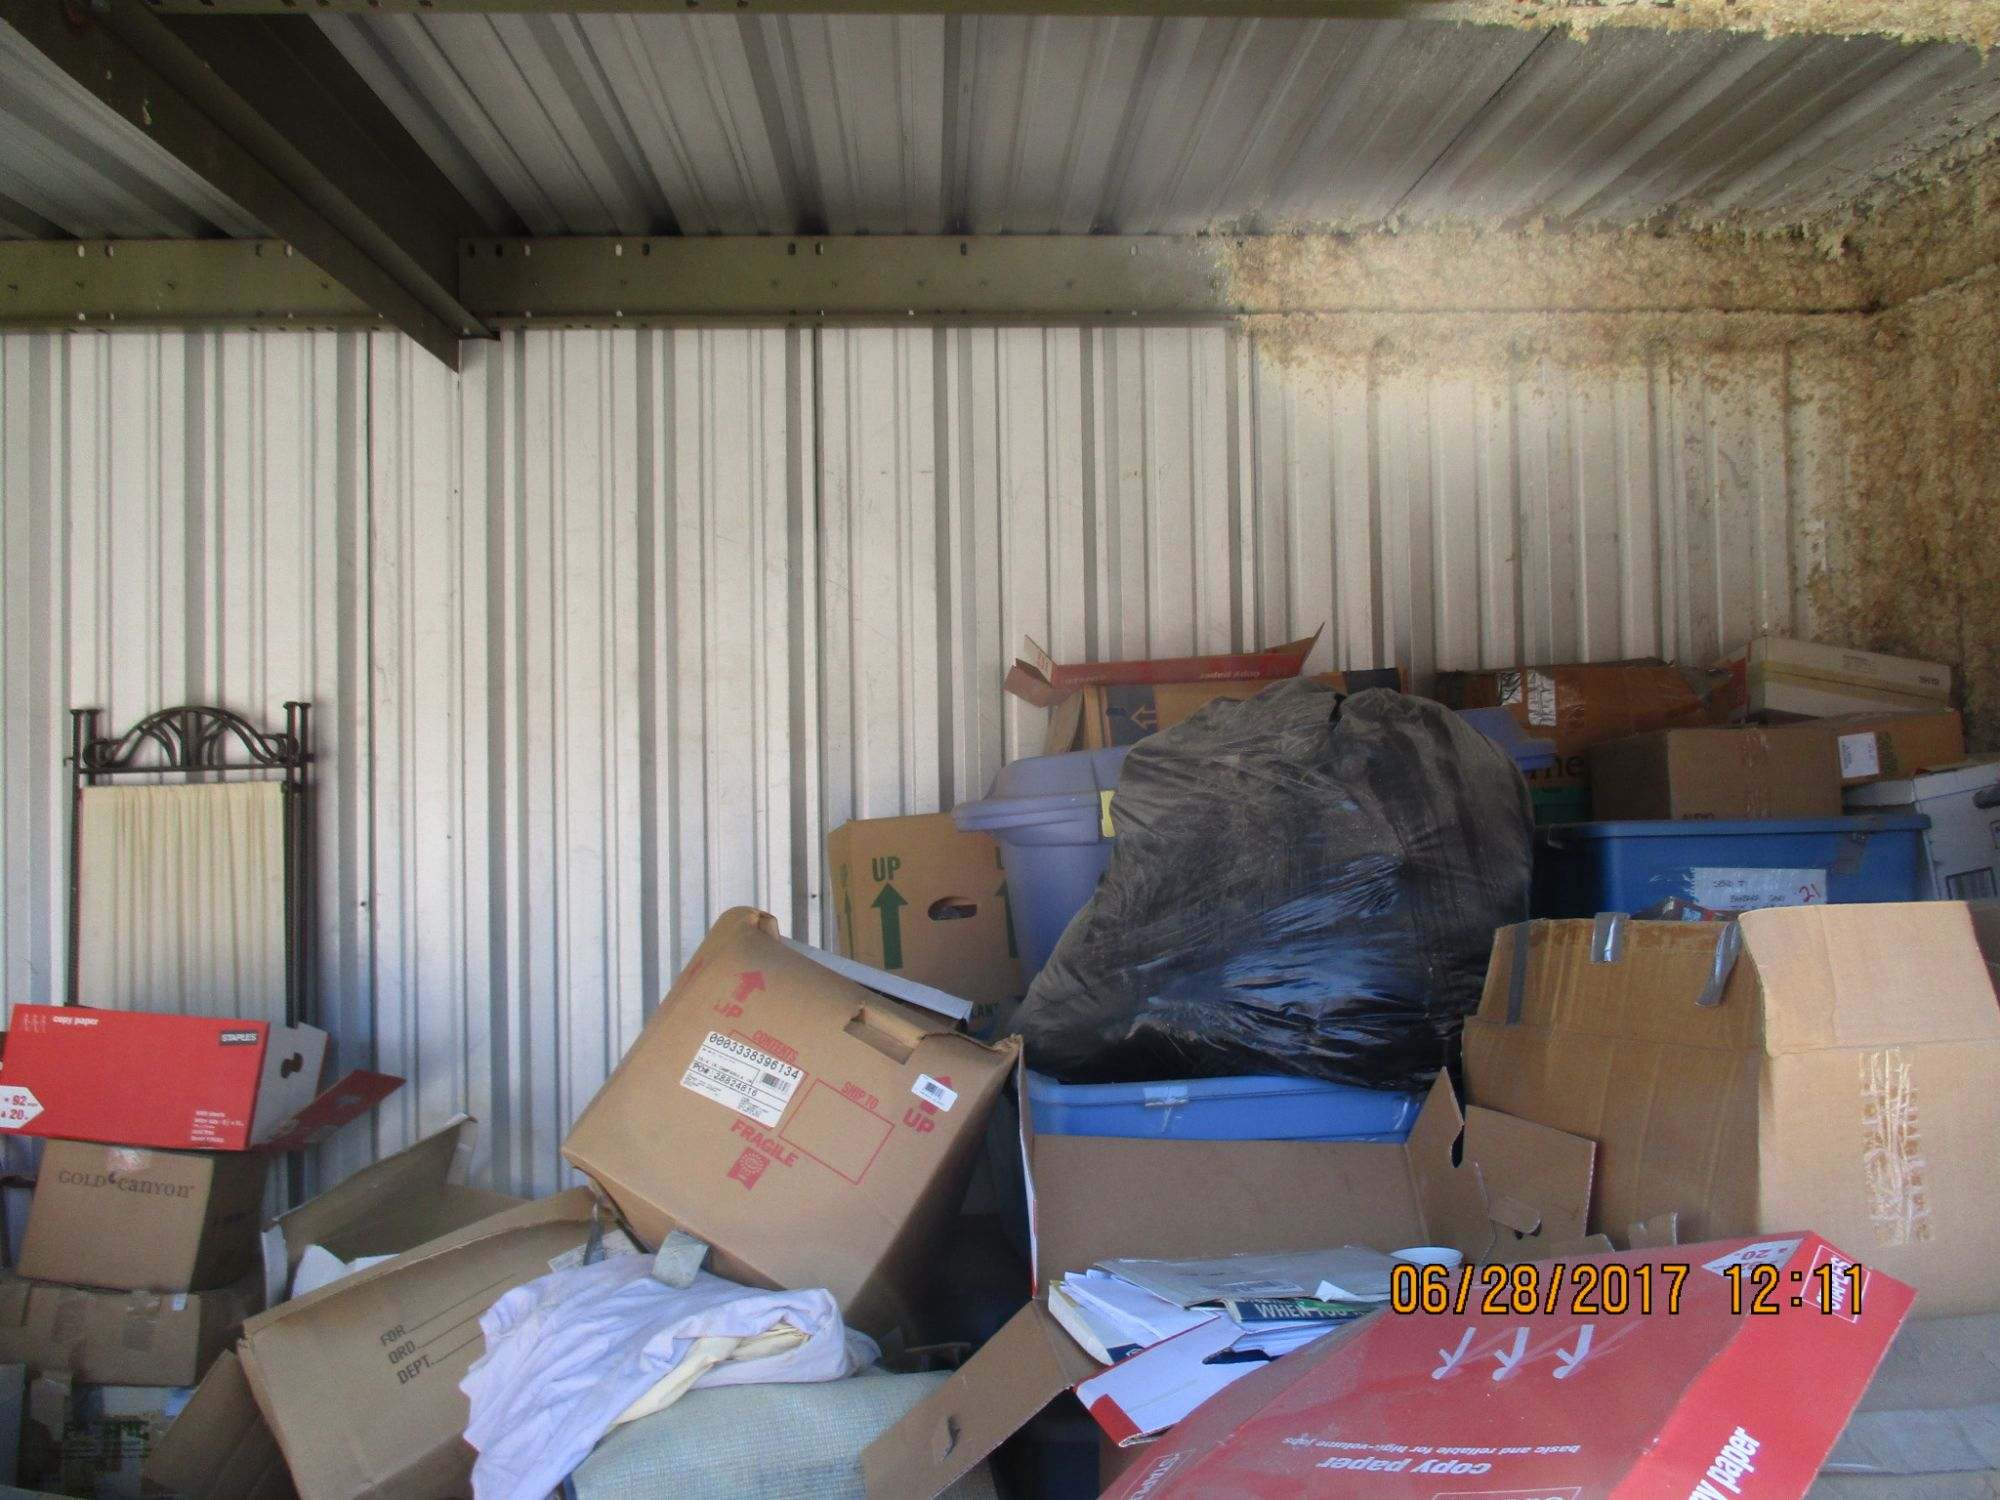 Storage Unit Auction 446643 Modesto CA StorageTreasurescom